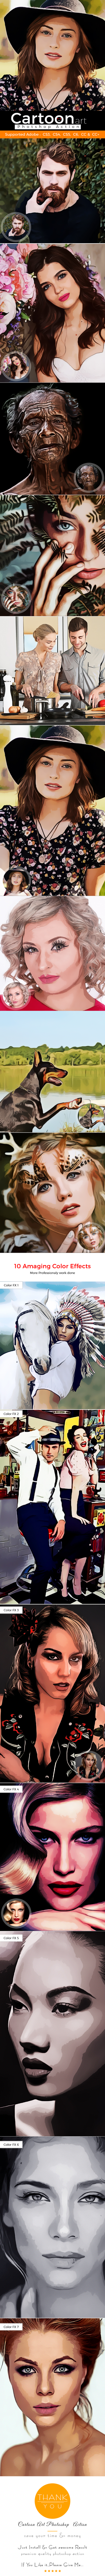 Cartoon Art Photoshop Action - Photo Effects Actions